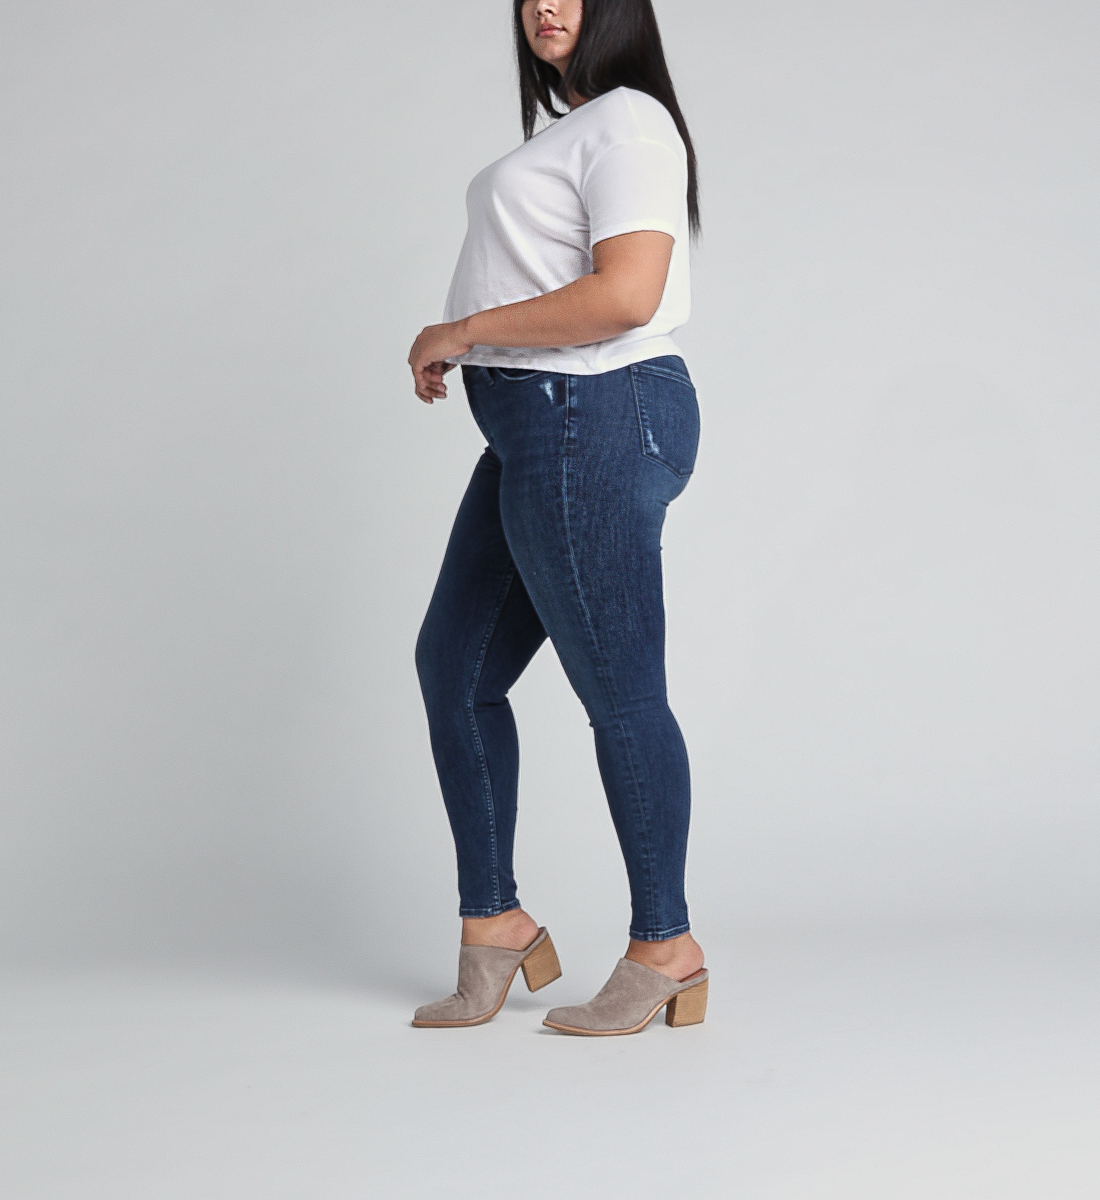 Most Wanted Mid Rise Skinny Leg Jeans Plus Size,Indigo Side